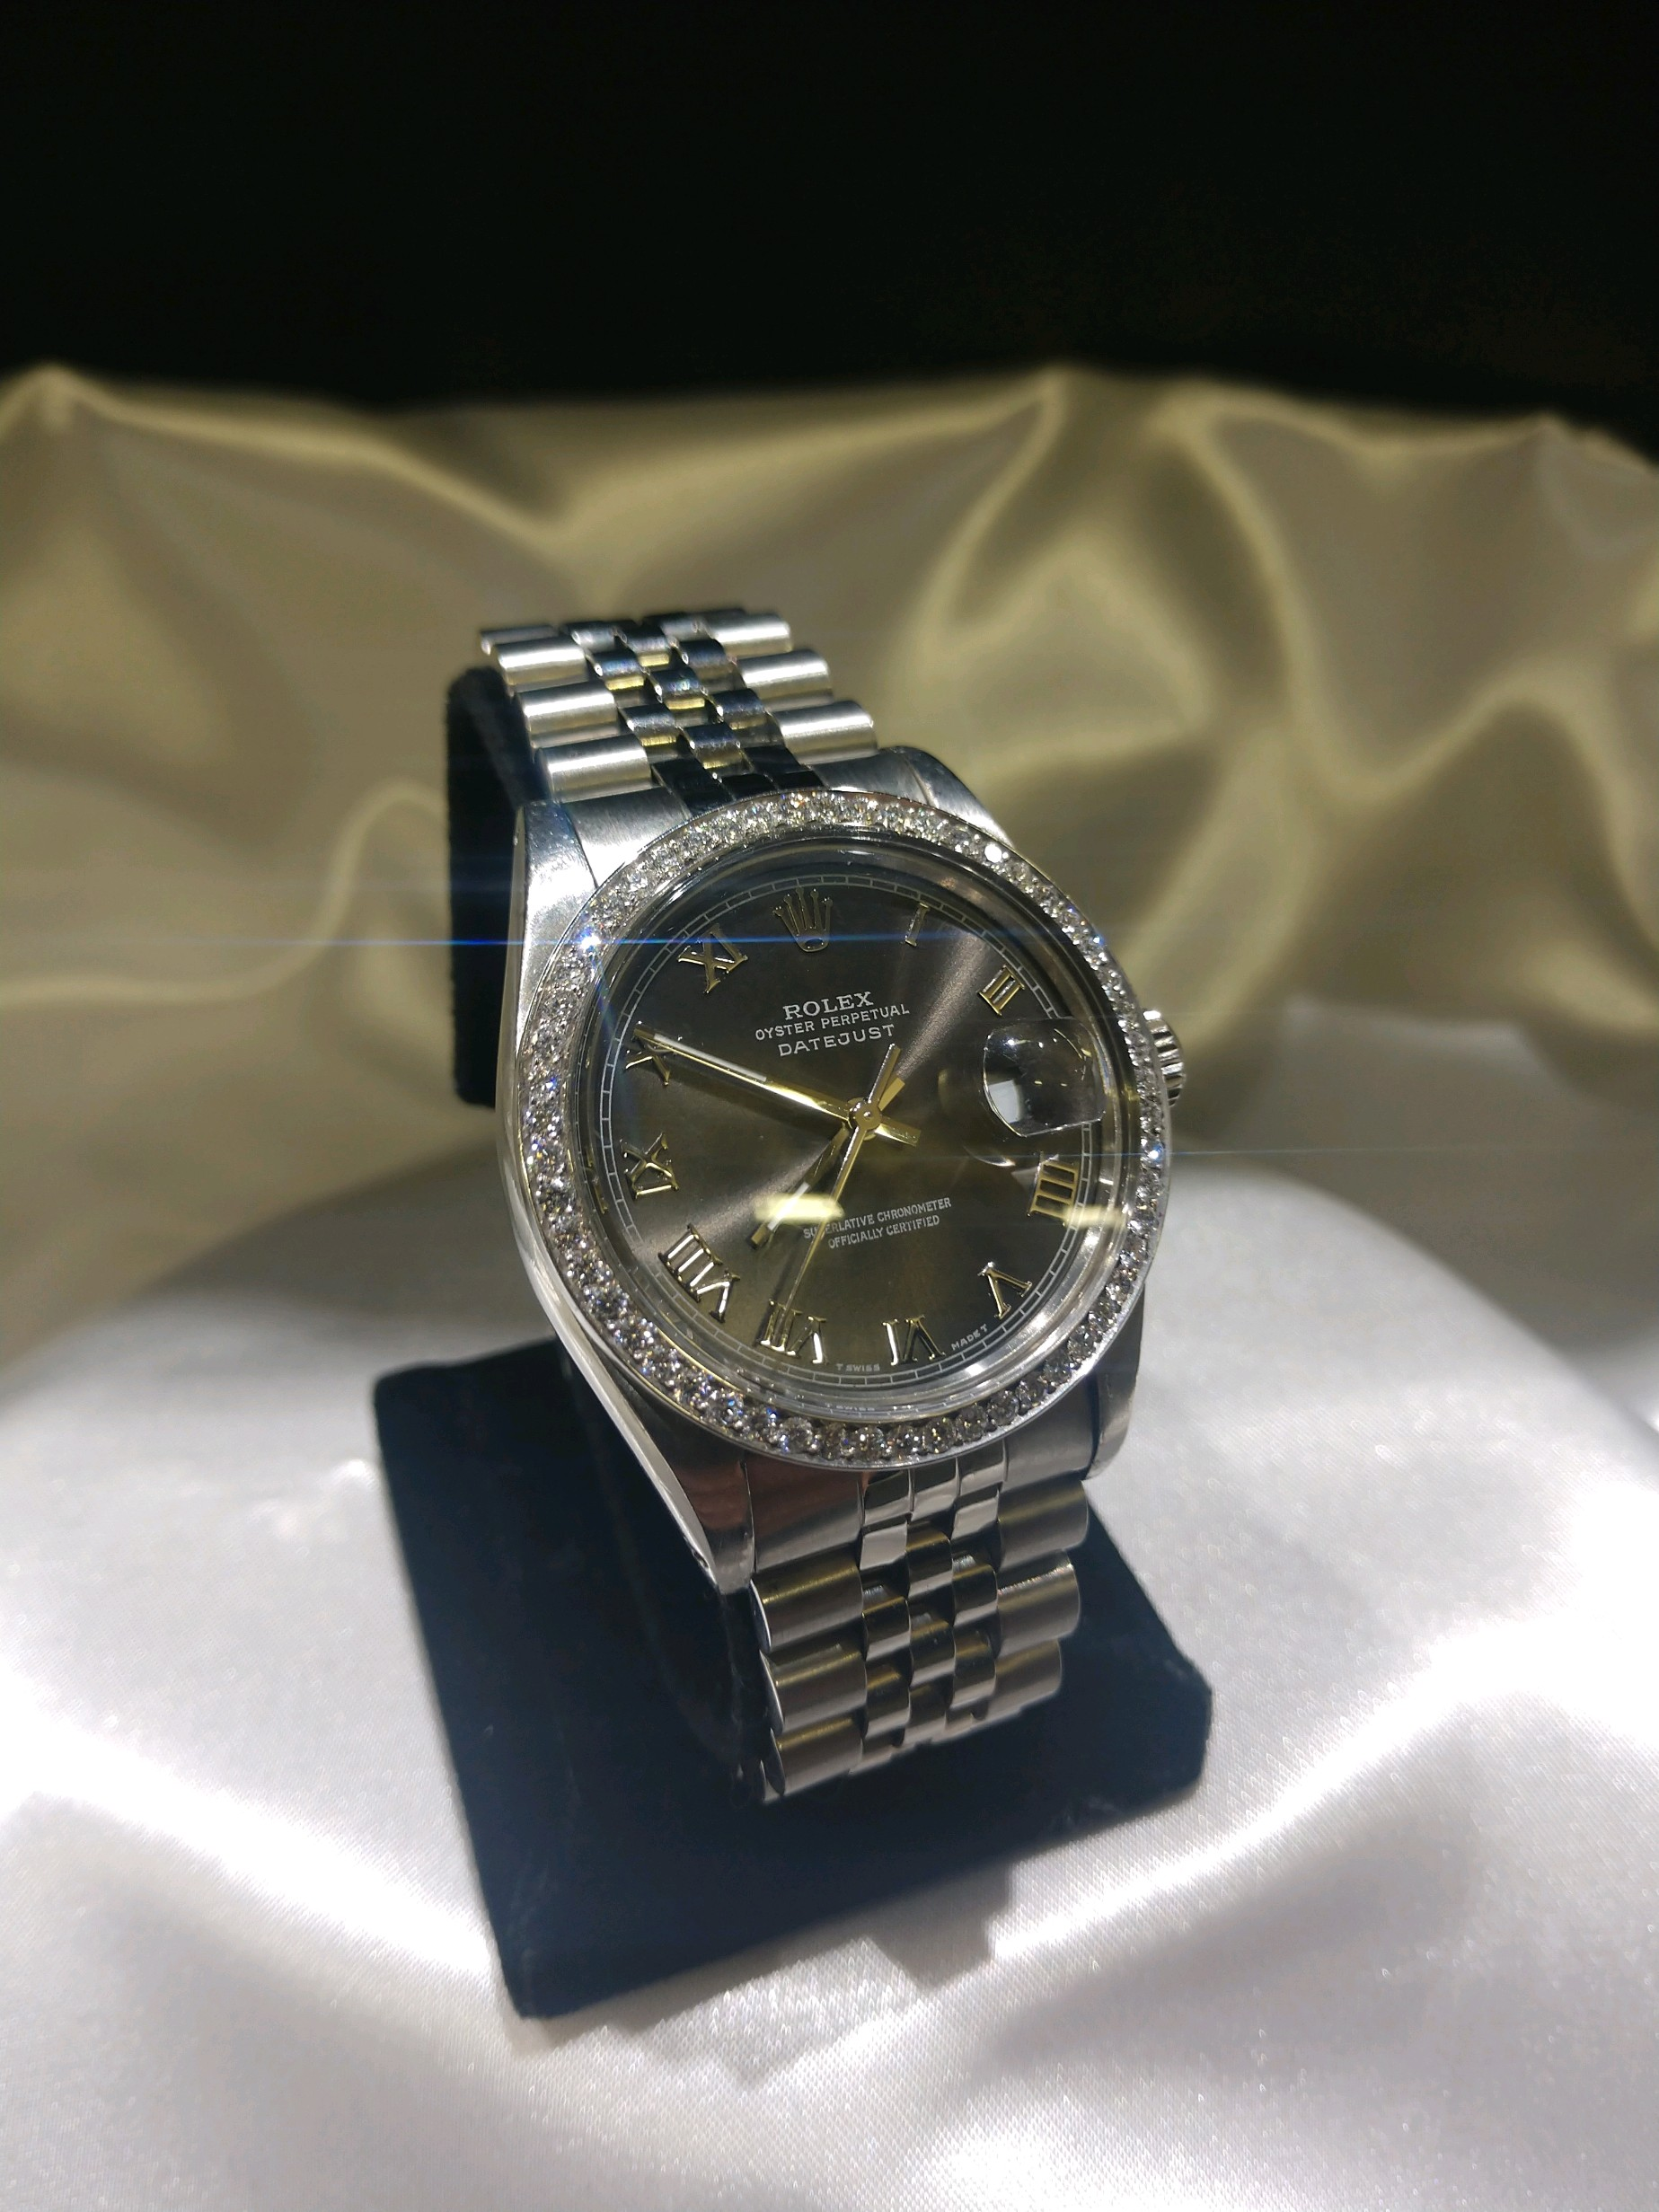 Steel Rolex Stainless Steel Rolex Datejust With A Diamond Bezel